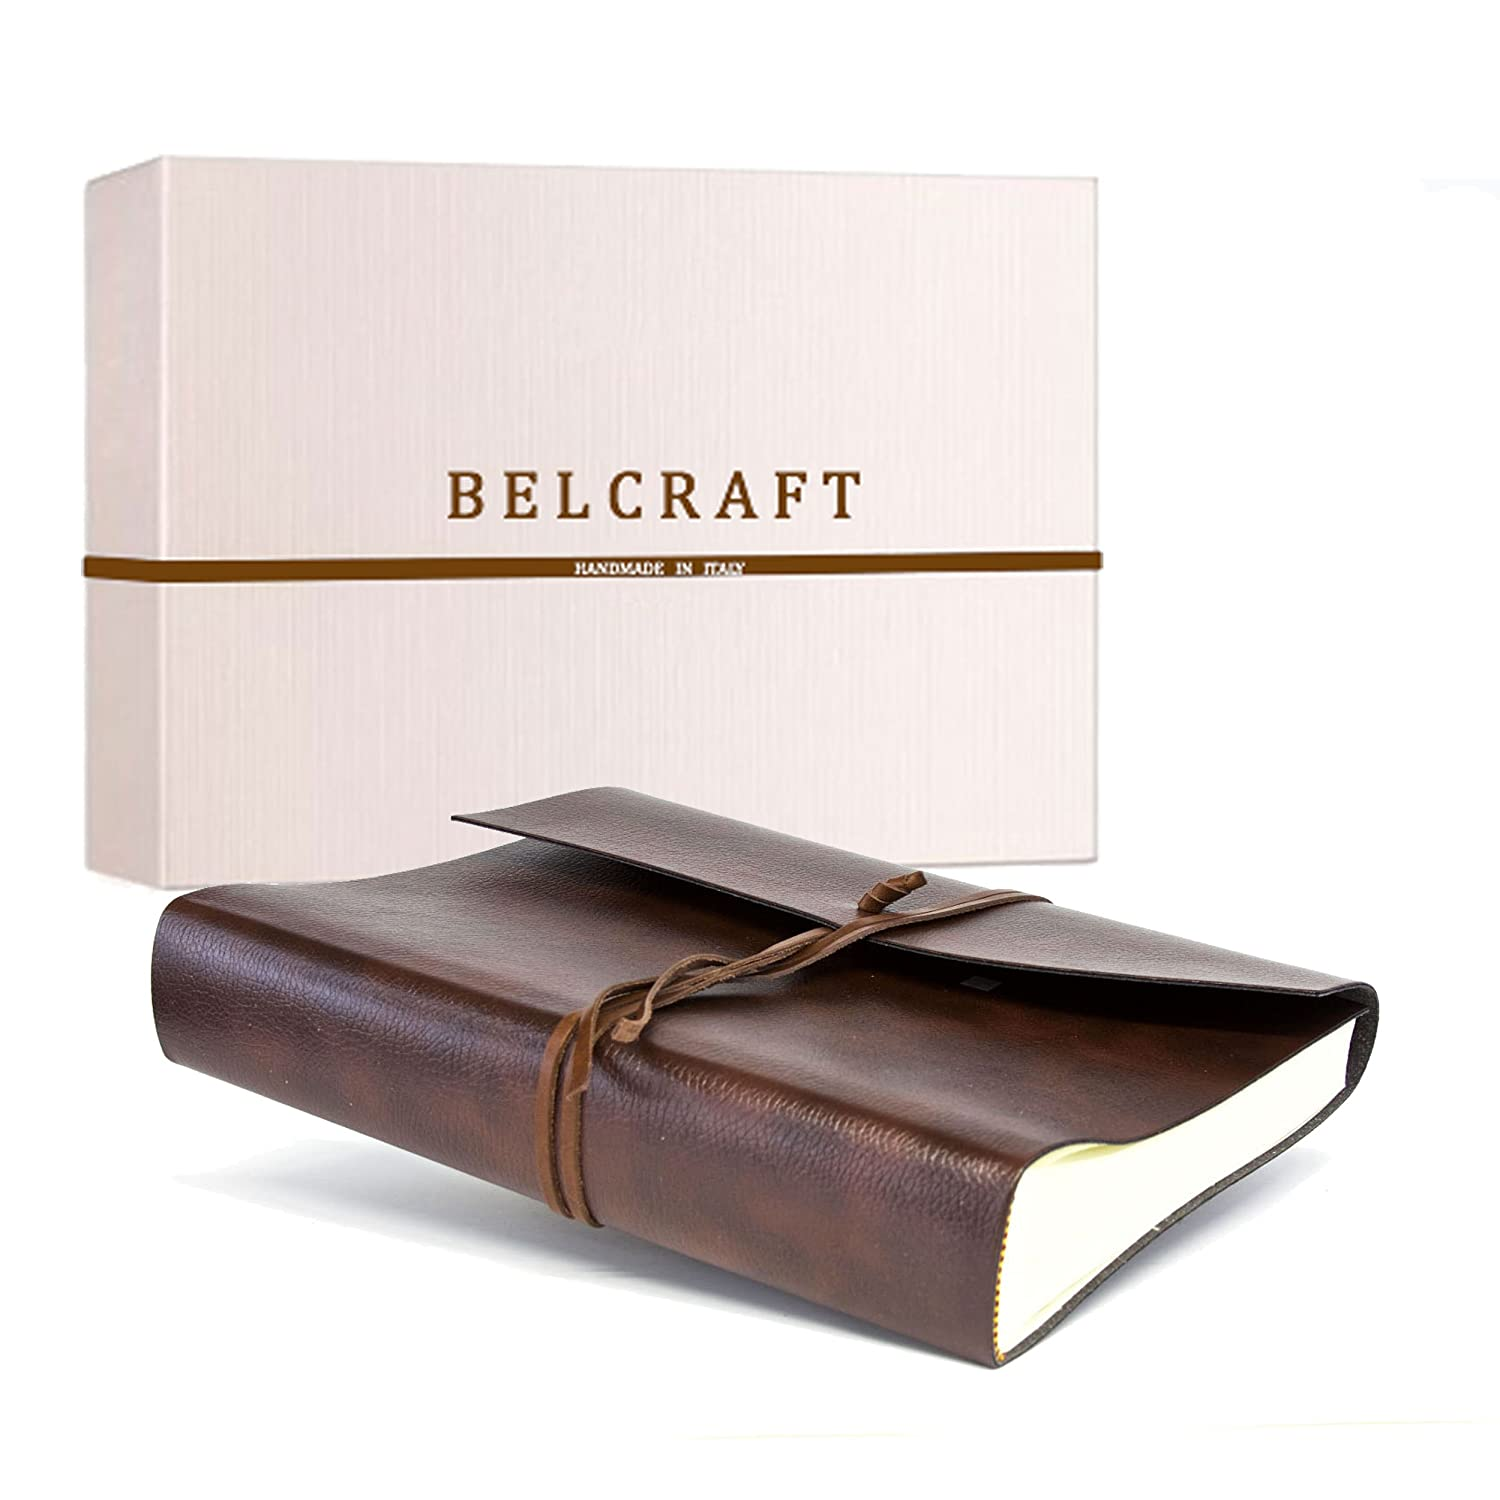 Belcraft Tivoli Photo Album made from Recycled Leather, Handmade in Classical Italian Style, Gift Box Included, A4 23 x 30 cm, Brown